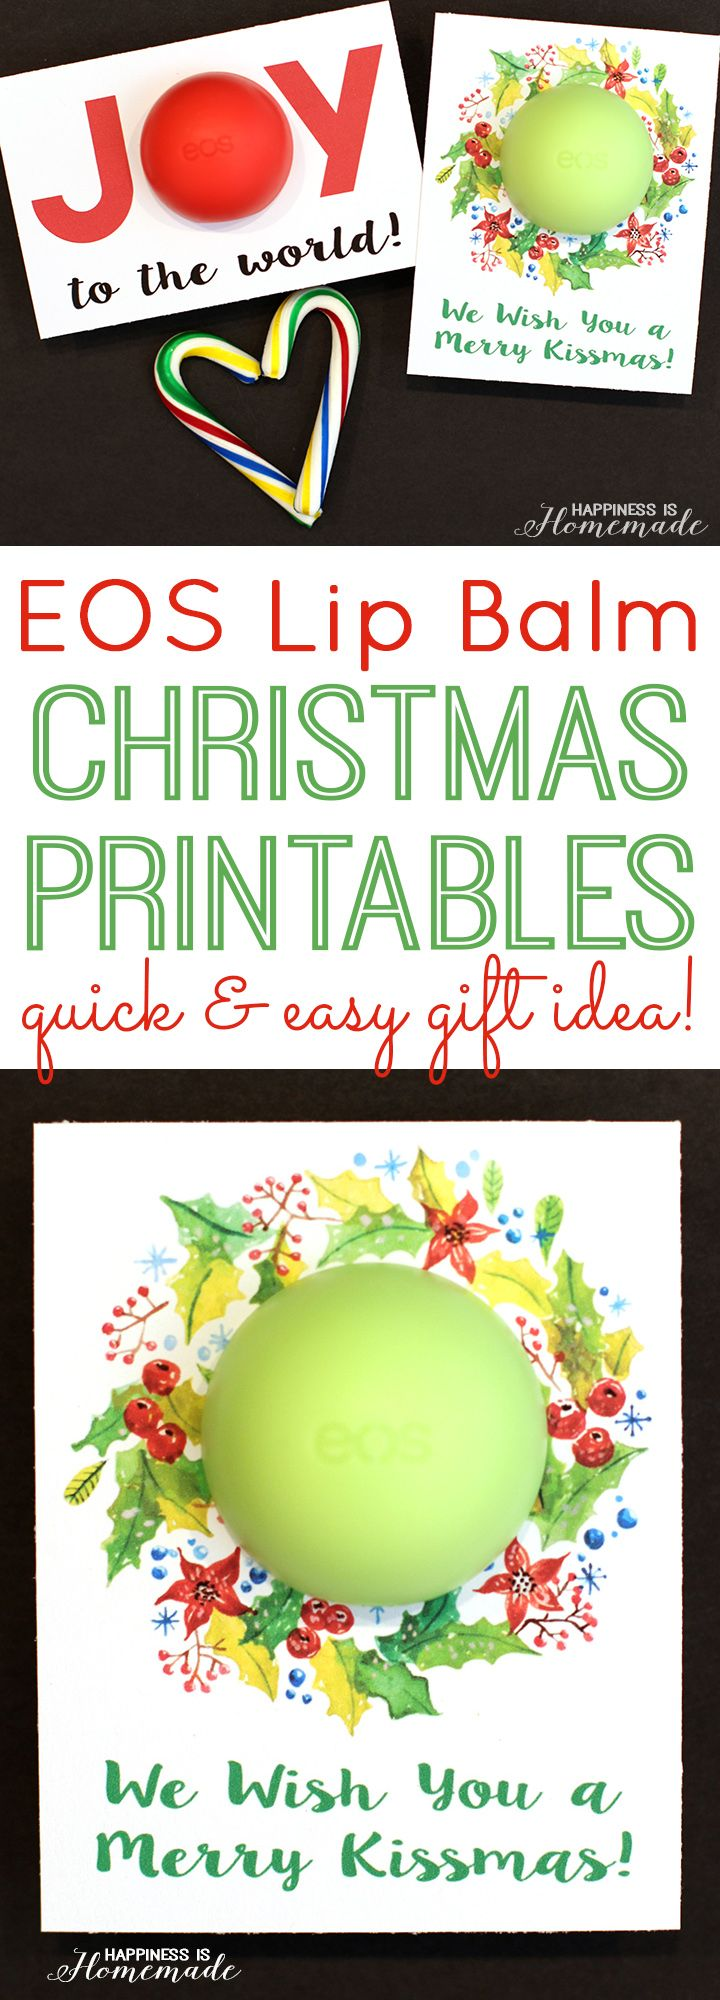 "These printable Christmas cards are a fantastic quick & easy last minute gift idea! Just add an EOS lip balm, and your gift is ready for giving! ""Merry Kissmas!"""